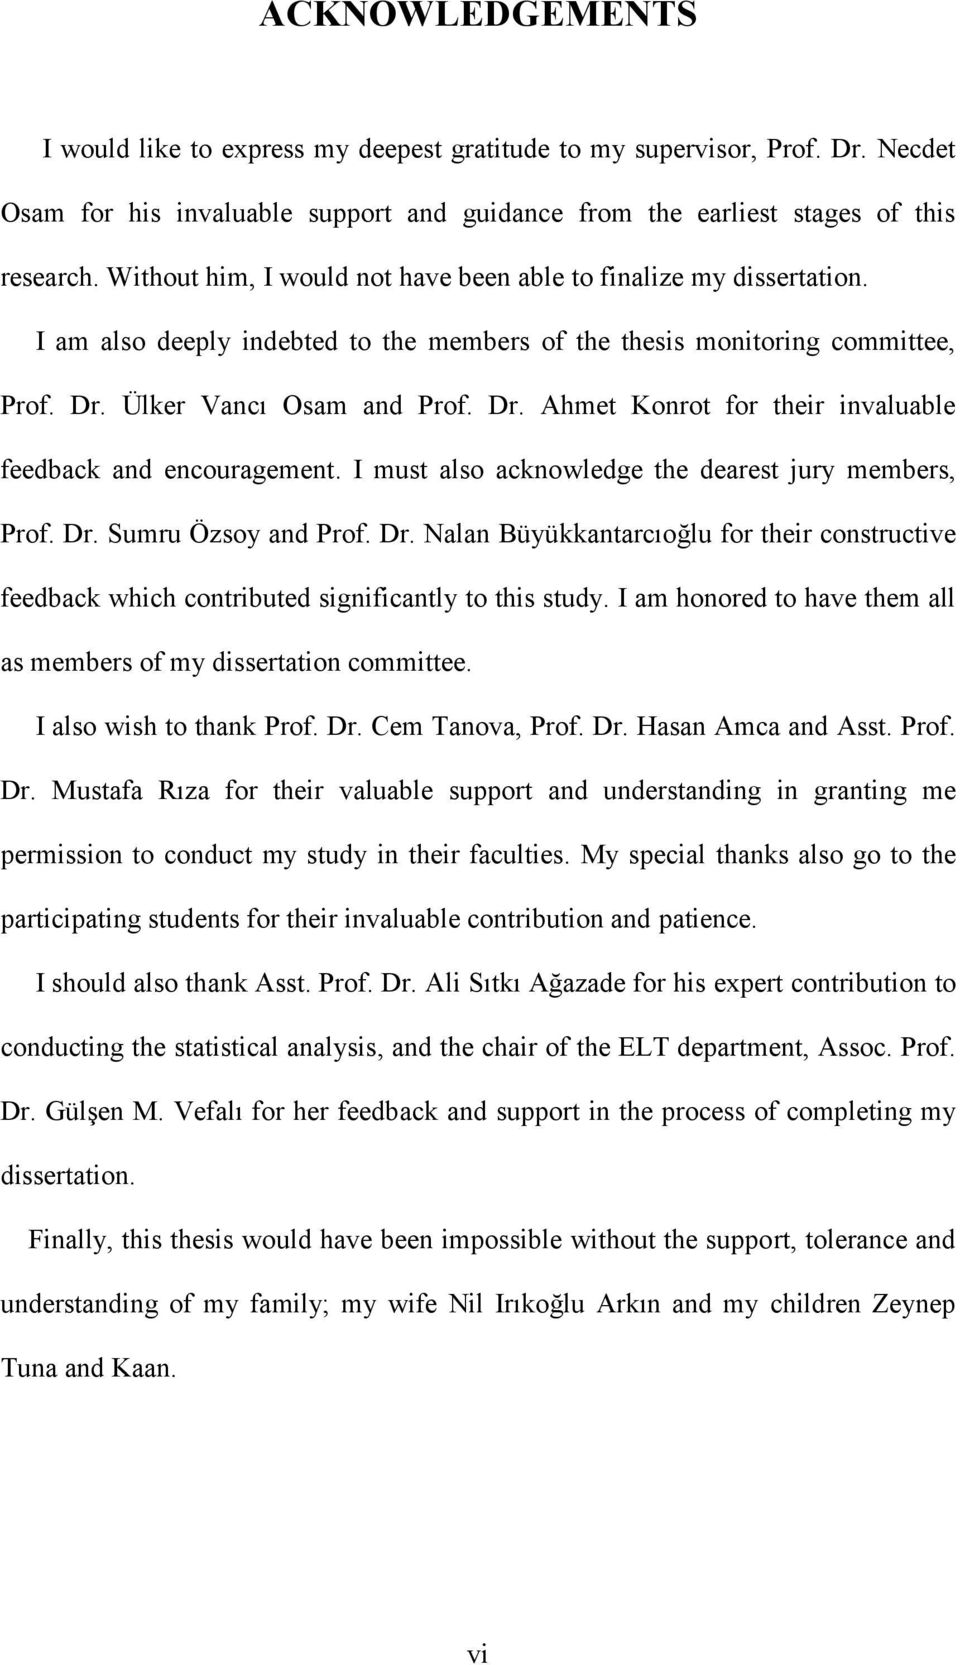 Ülker Vancı Osam and Prof. Dr. Ahmet Konrot for their invaluable feedback and encouragement. I must also acknowledge the dearest jury members, Prof. Dr. Sumru Özsoy and Prof. Dr. Nalan Büyükkantarcıoğlu for their constructive feedback which contributed significantly to this study.